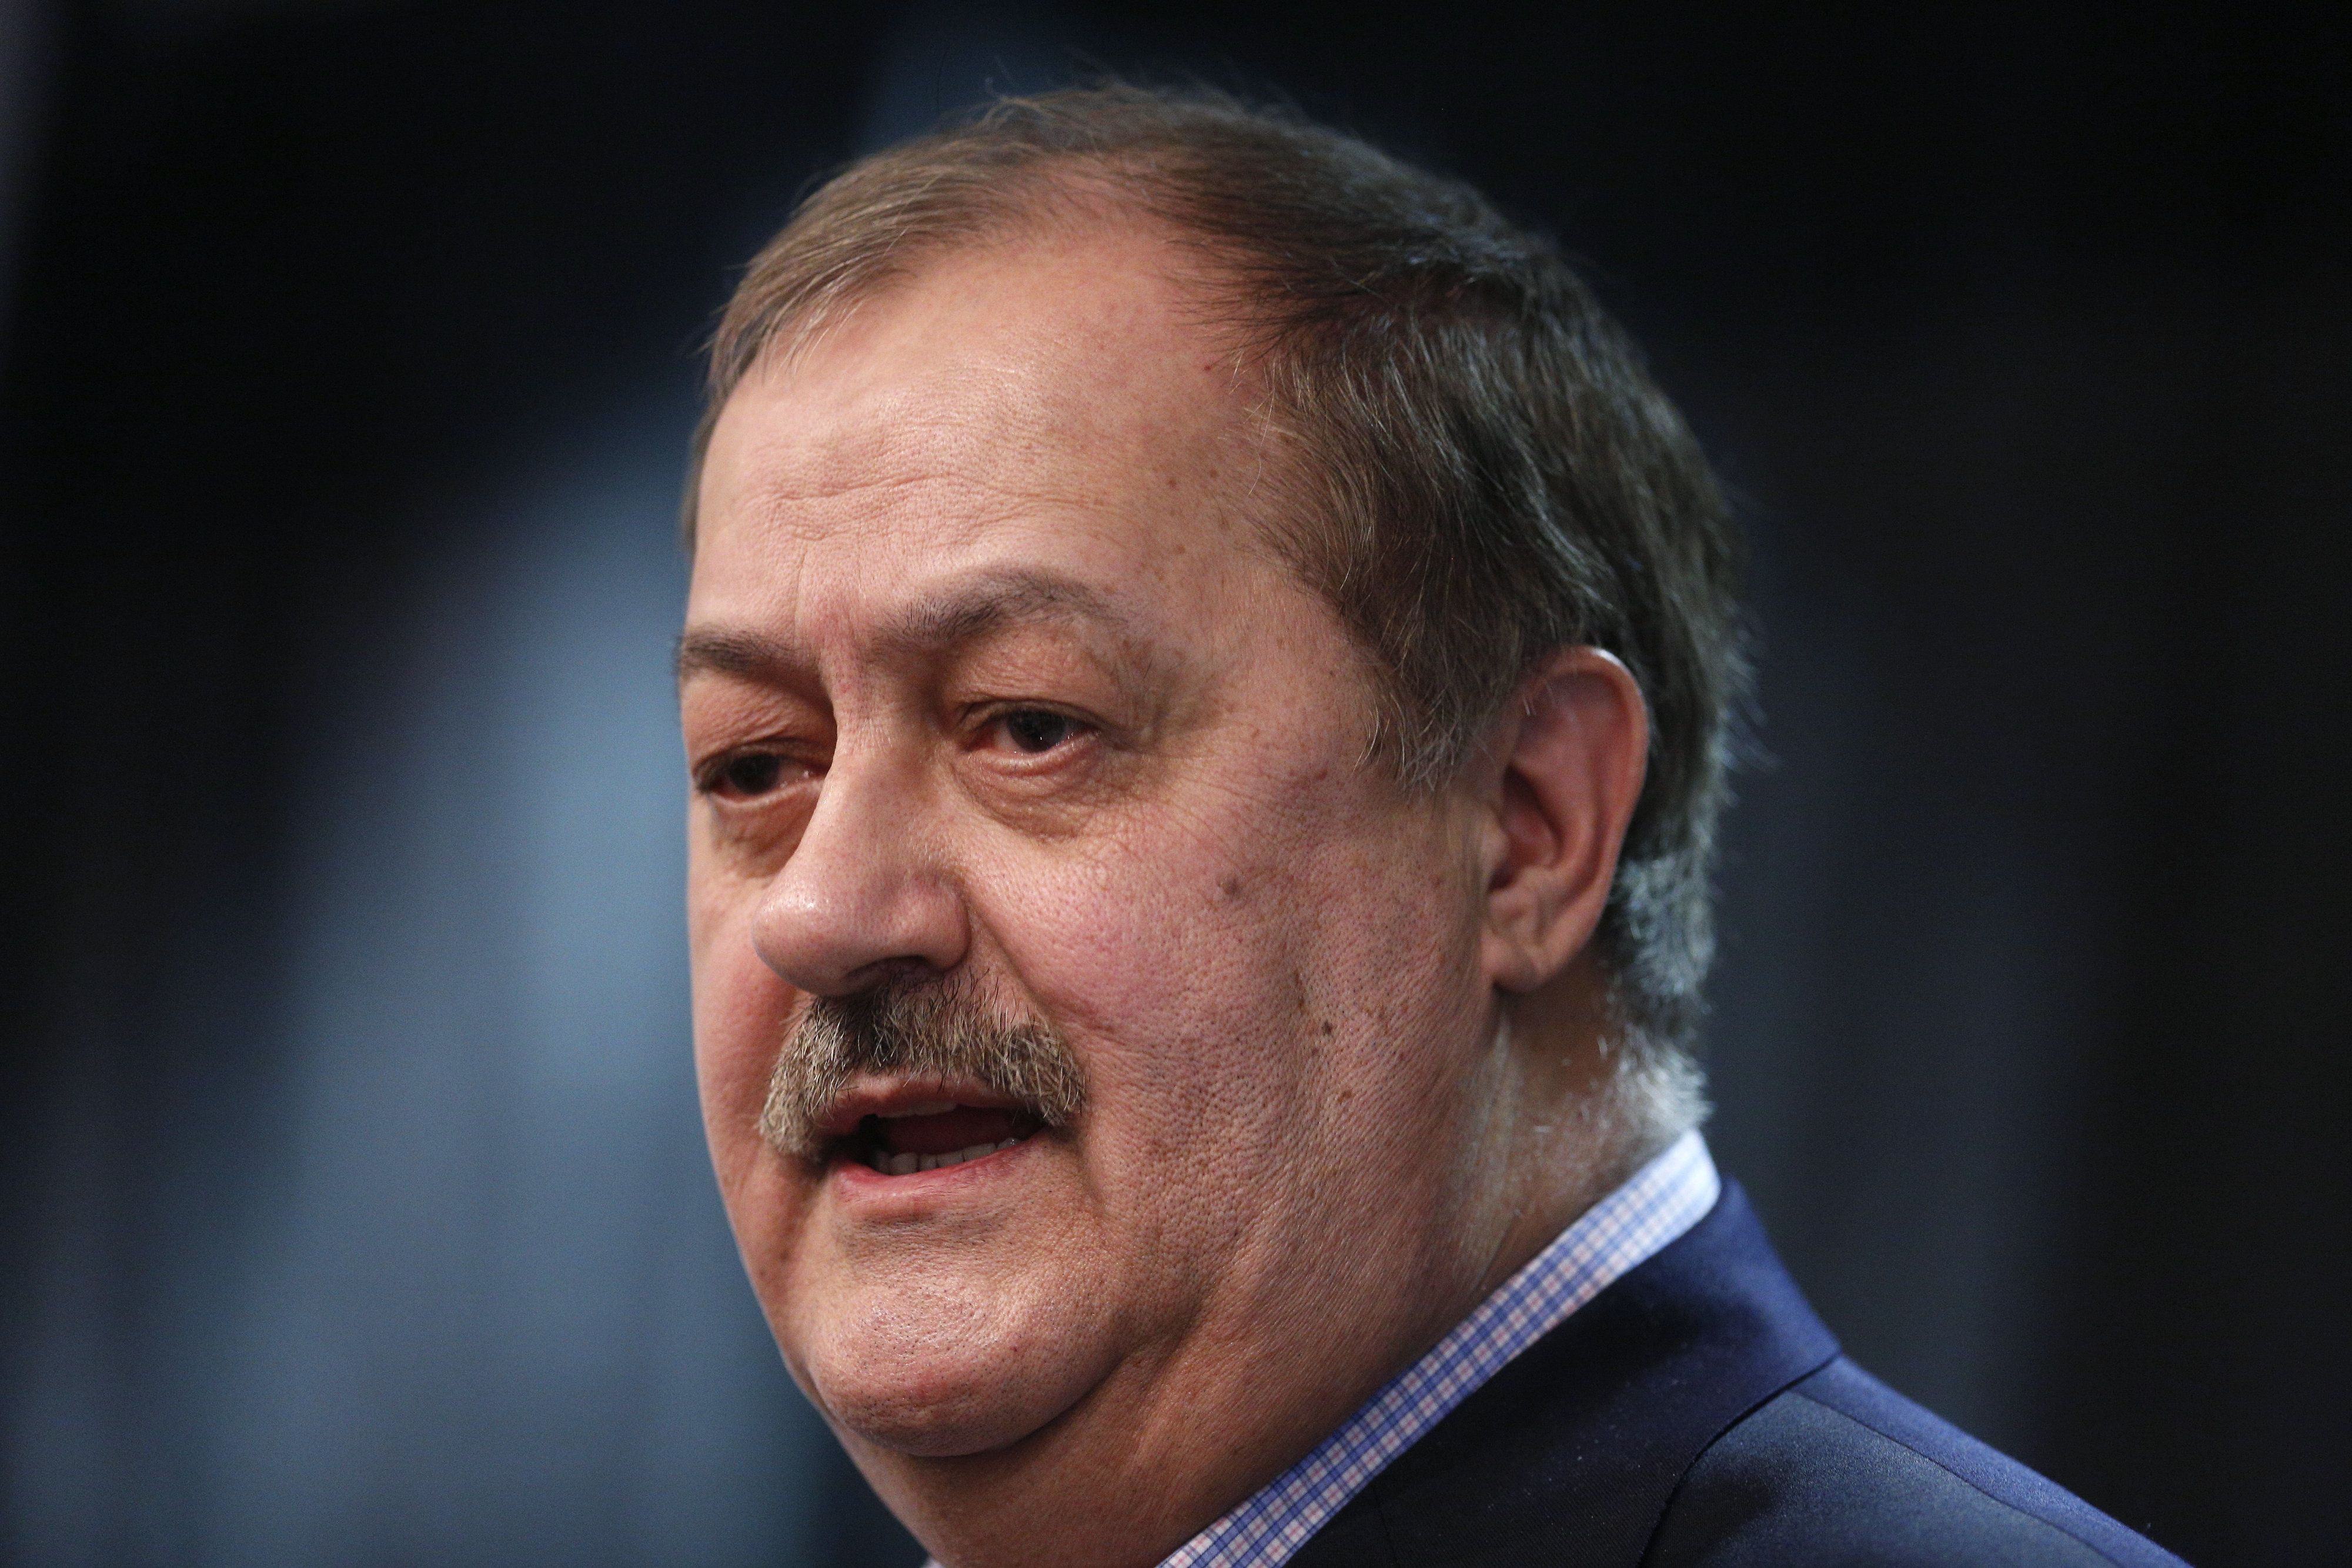 Former Massey Energy CEO Don Blankenship, a Republican U.S. Senate candidate from West Virginia, at a town hall campaign